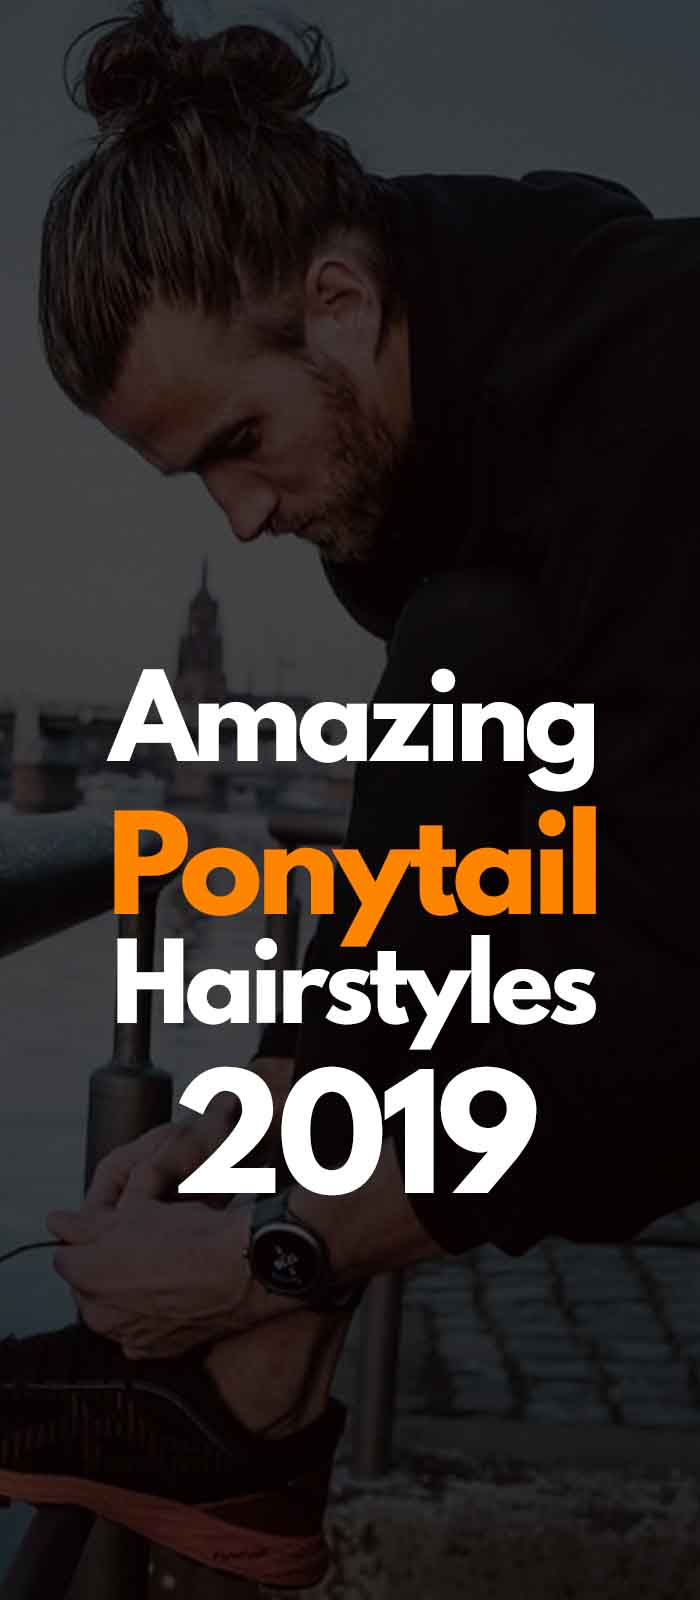 Ponytail Hairstyle For Men 2019!